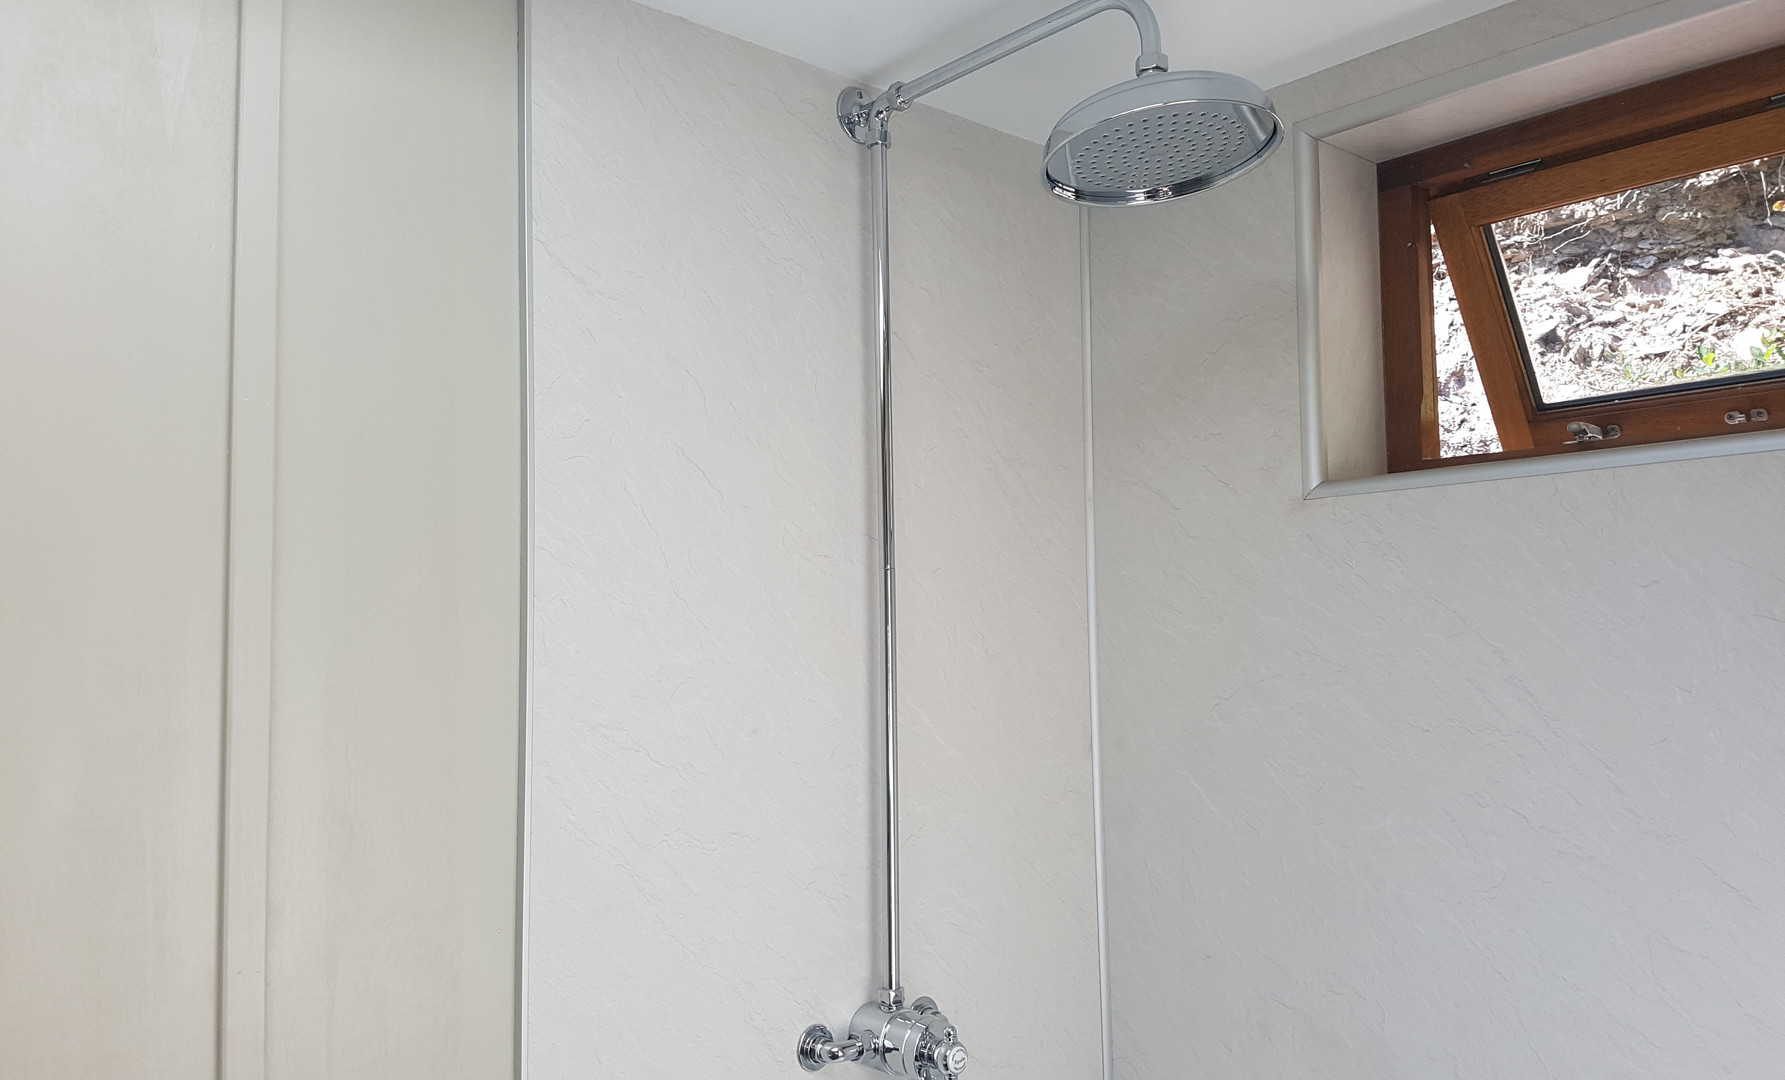 A genorous shower enclosure with a drench shower head